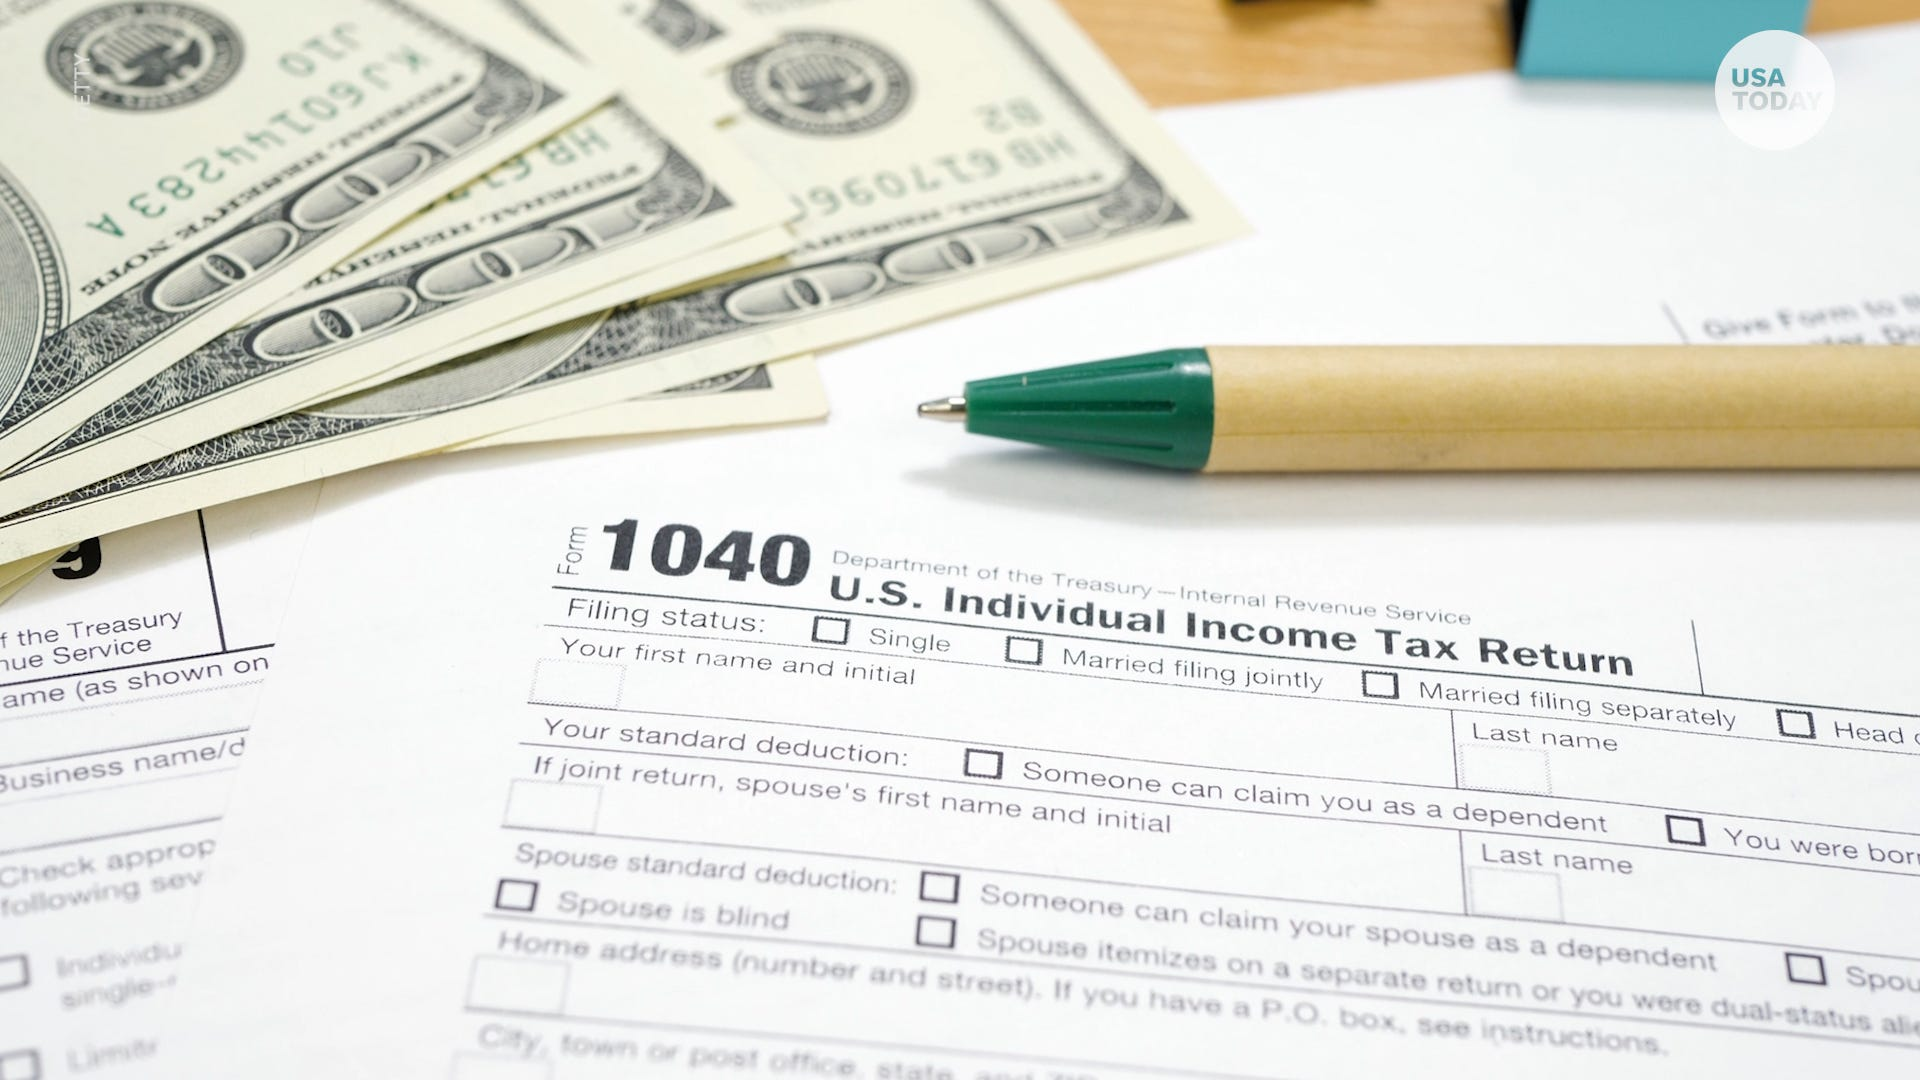 Get a full Refund of your taxes by a simple method $3000 Stimulas Check by IRS